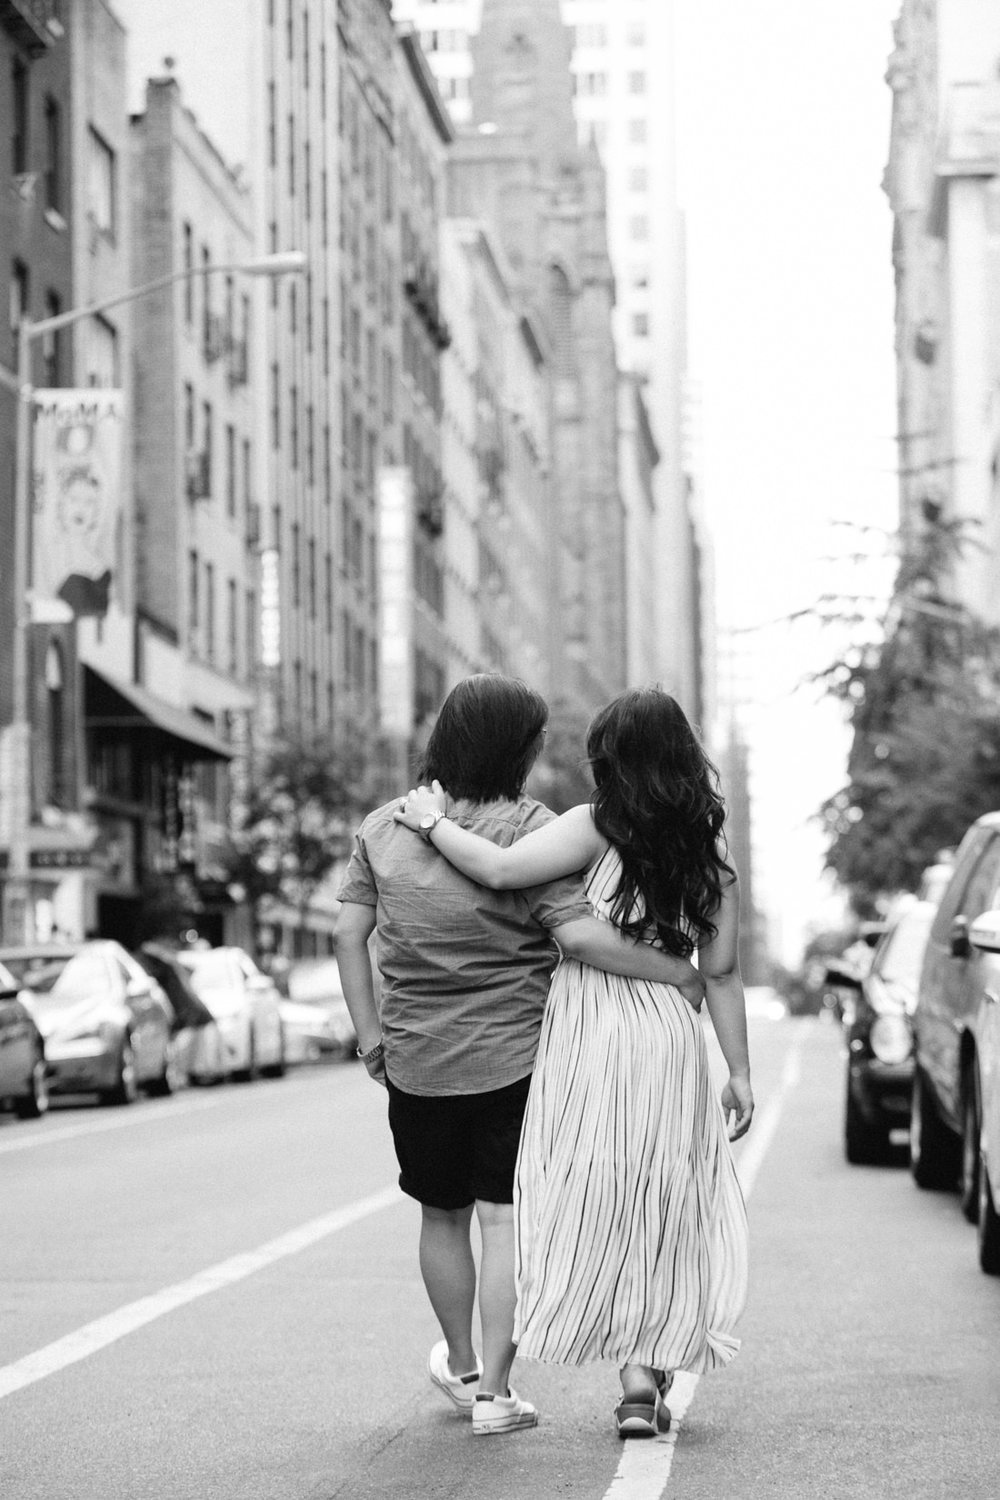 NYC-engagement-photography-by-Tanya-Isaeva-63.jpg